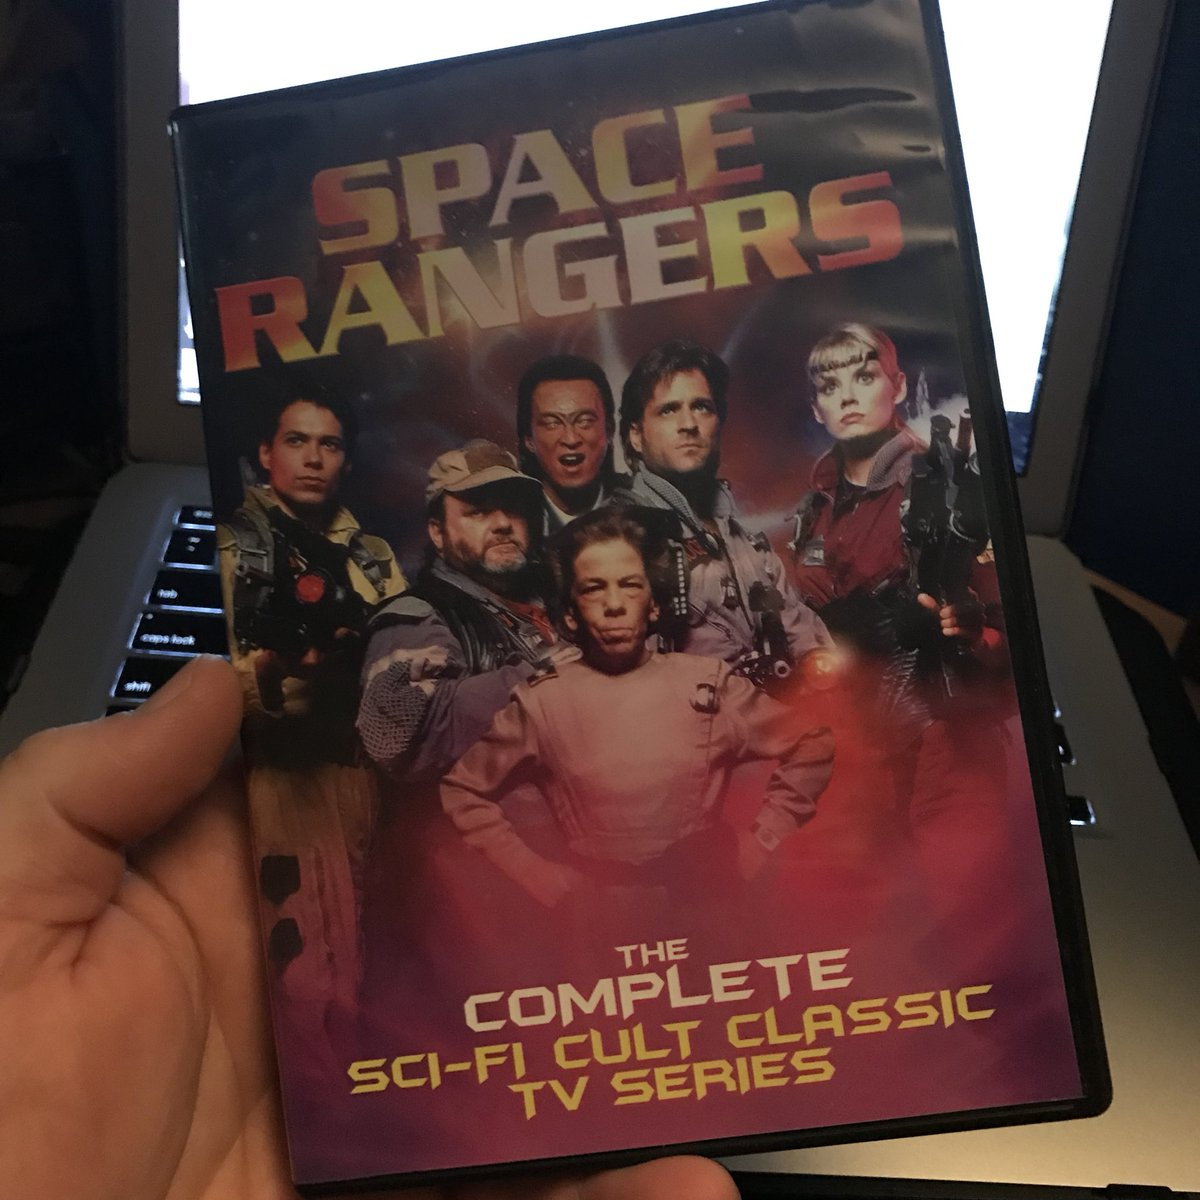 Hey, y'all remember this? #SpaceRangers <br>http://pic.twitter.com/qRfaVNo0VH